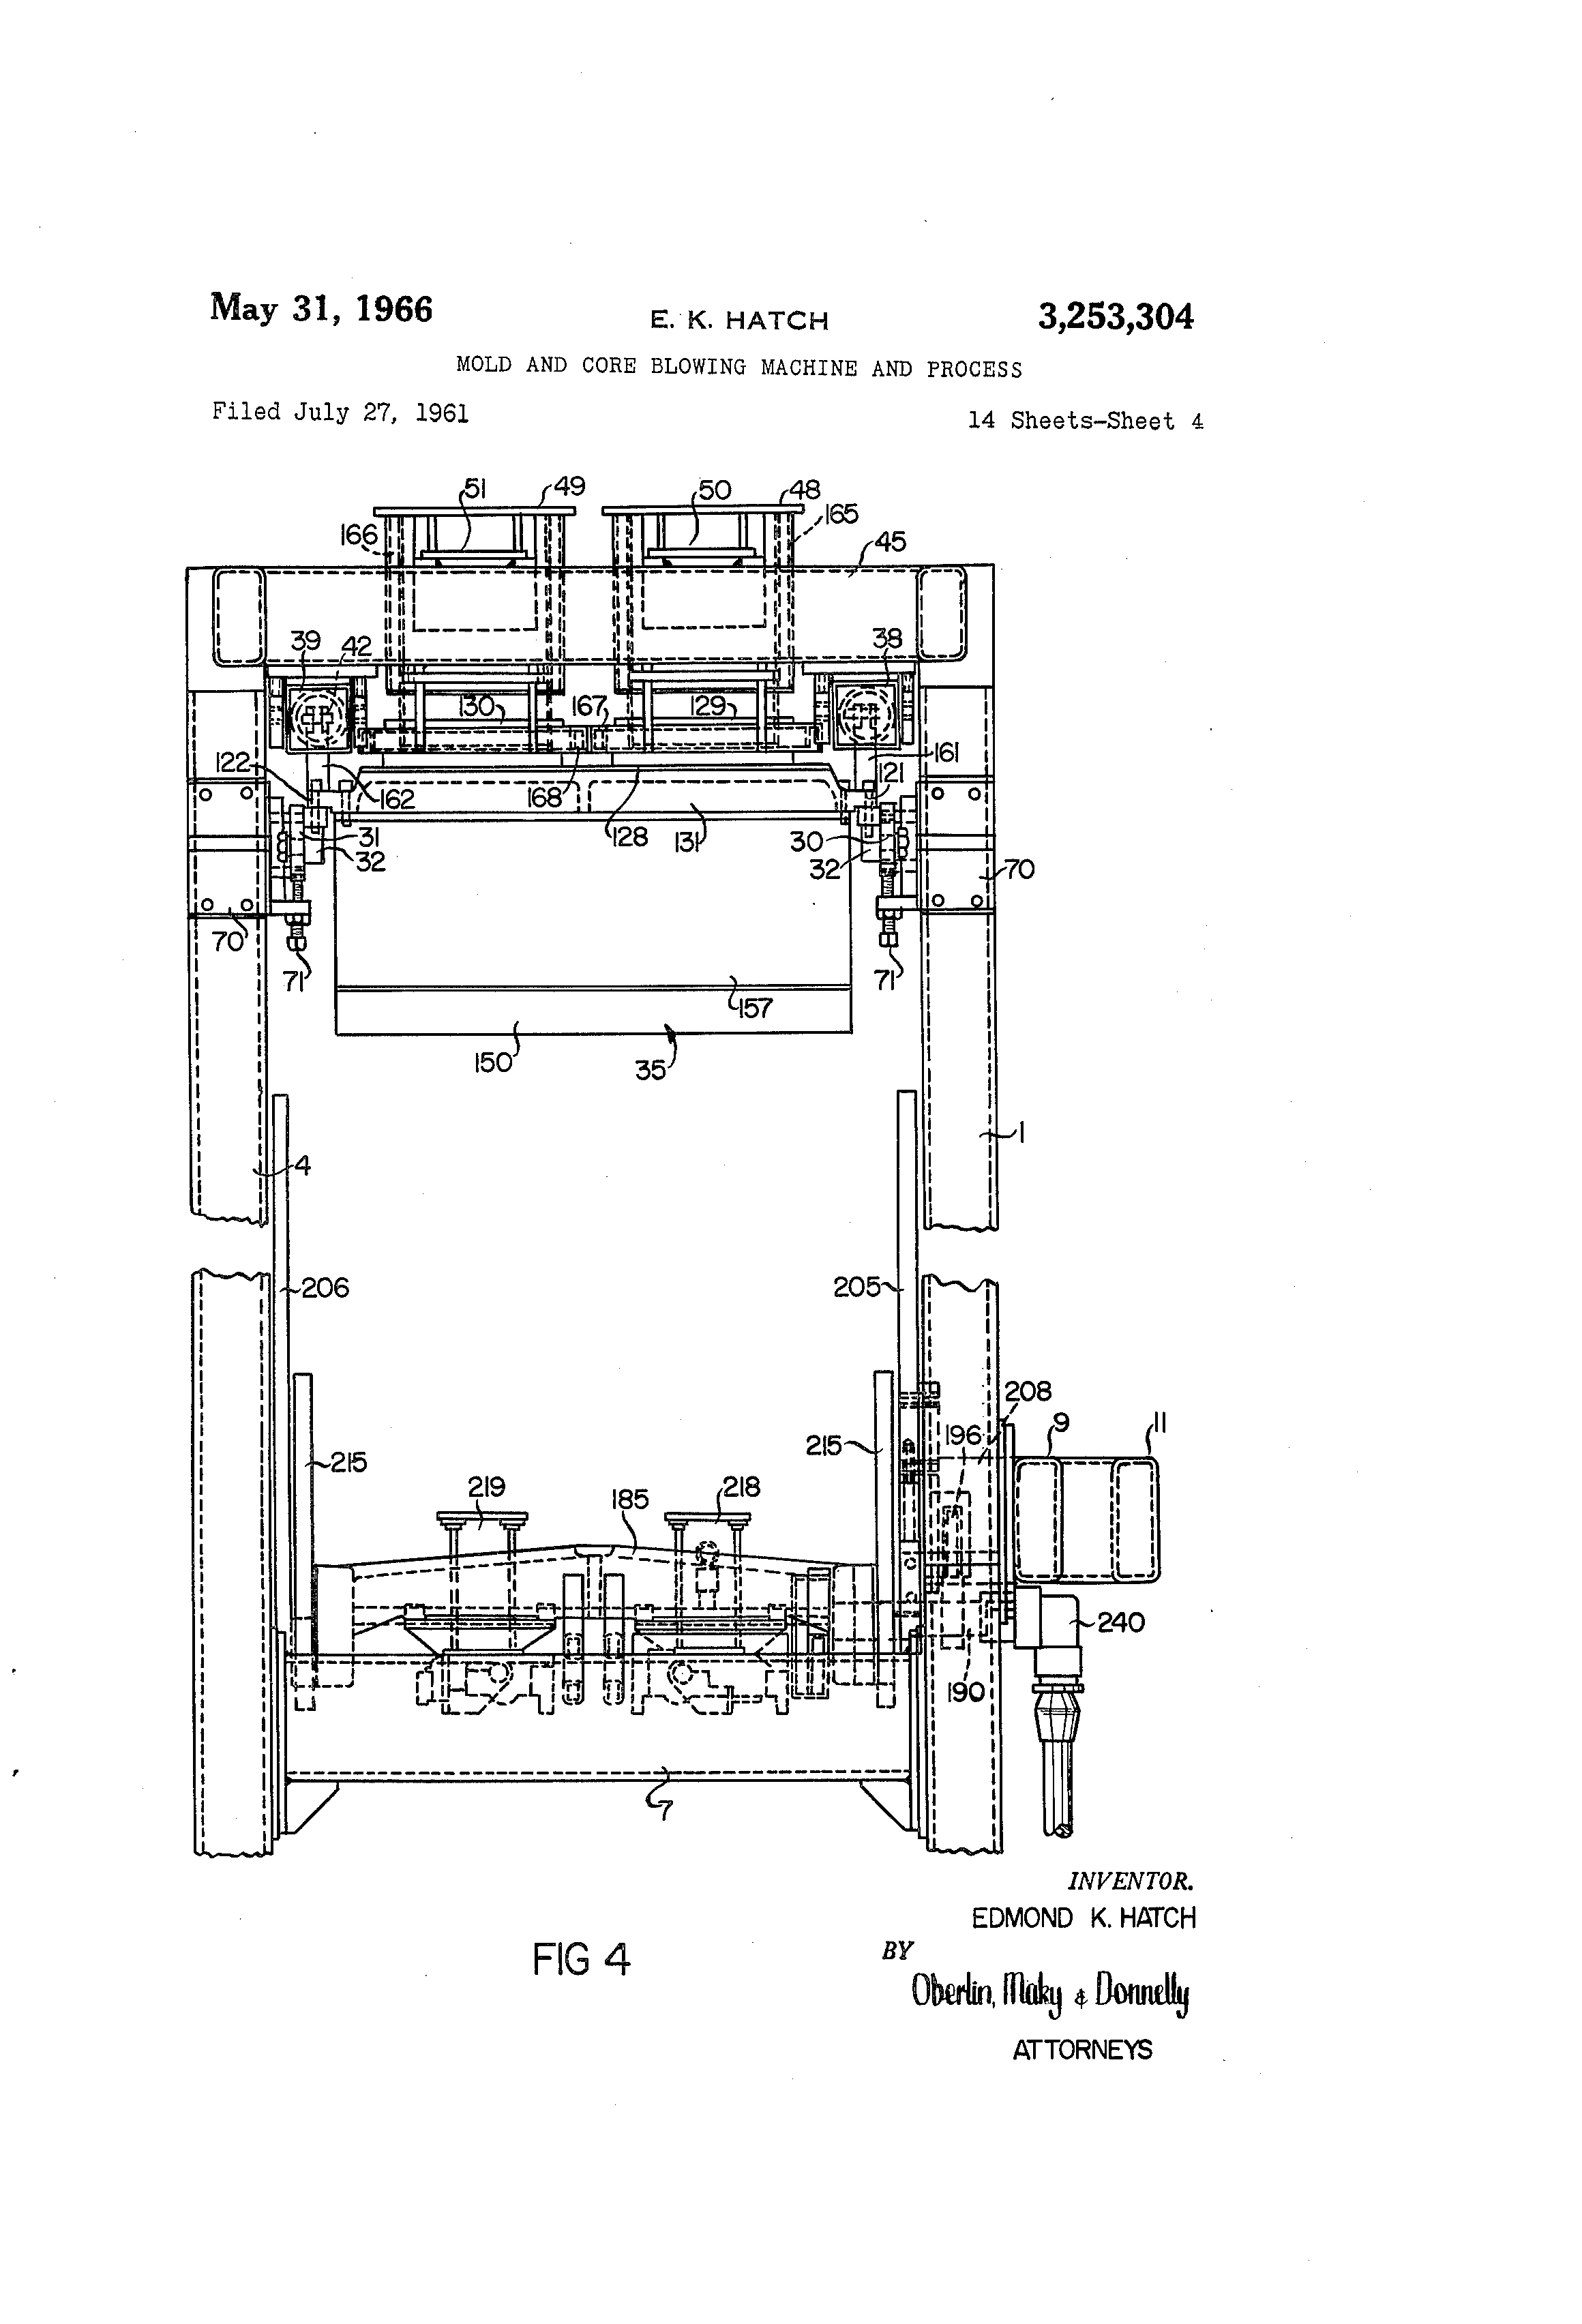 US3253304 3 patent us3253304 mold and core blowing machine and process  at crackthecode.co